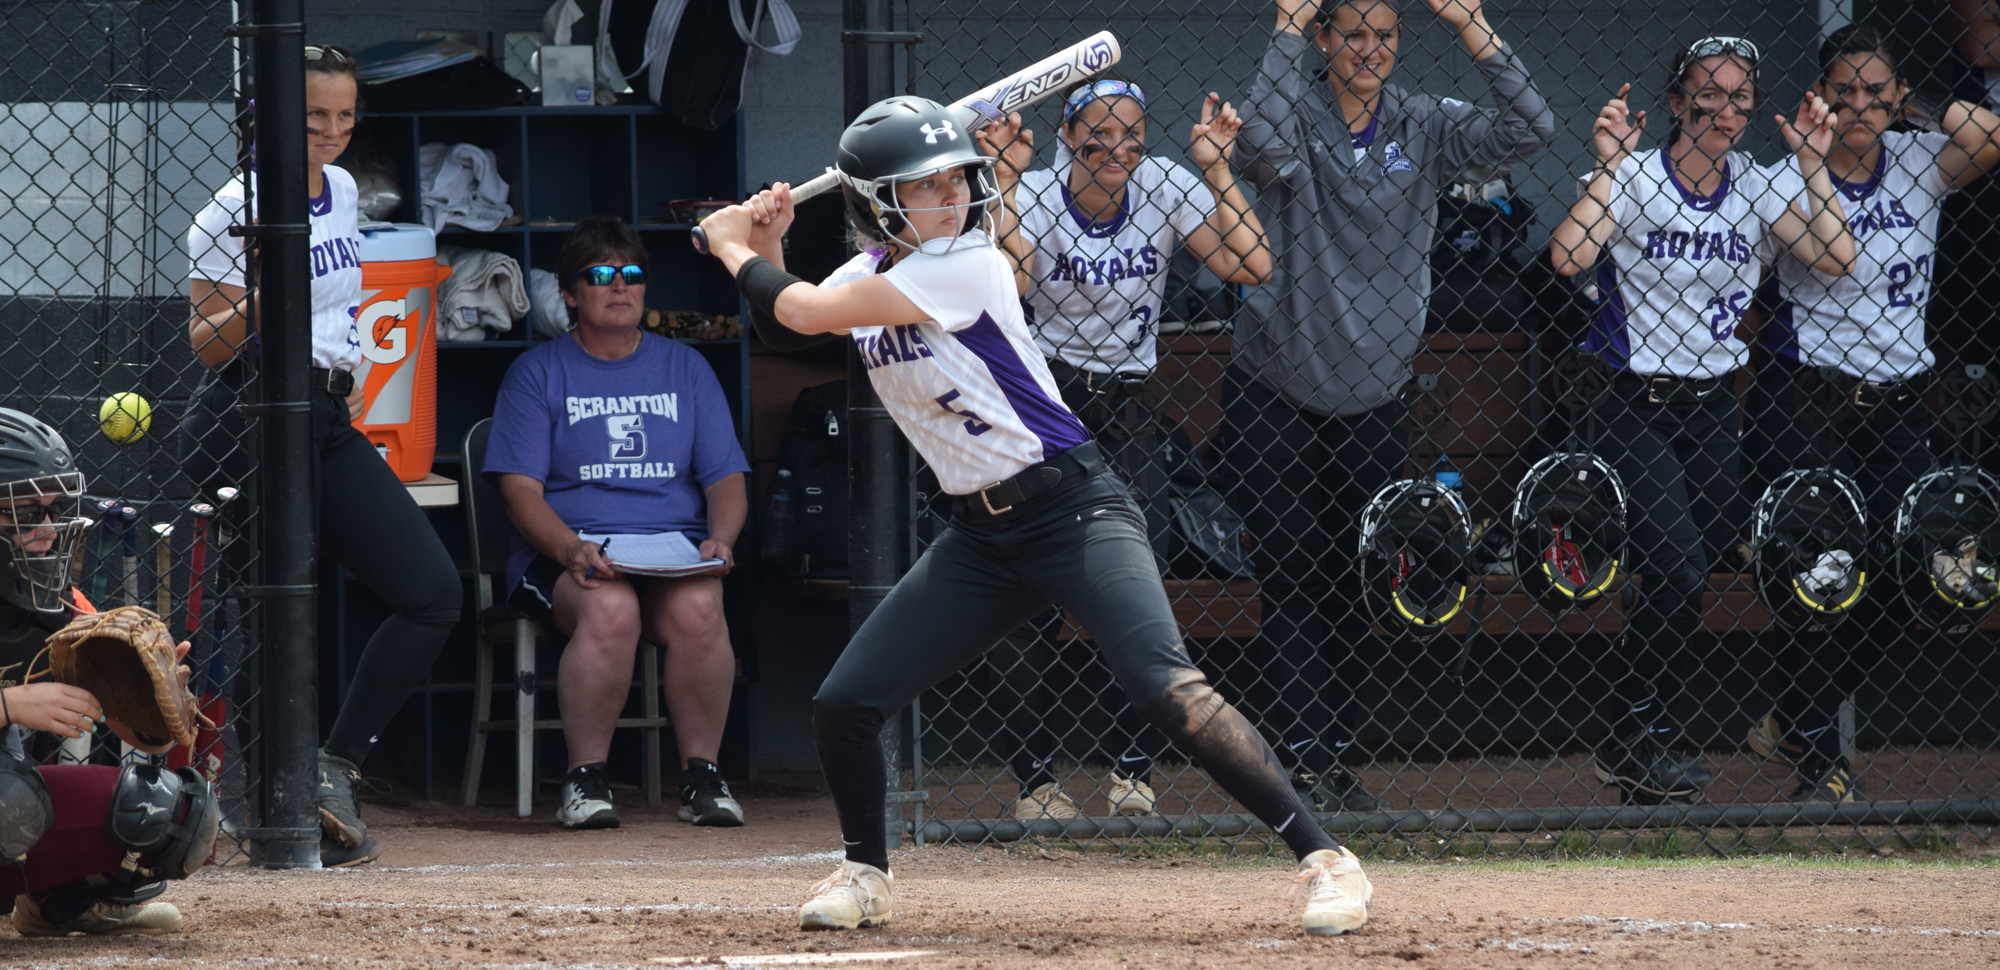 Junior outfielder Megan Zinn has been named The University of Scranton Athlete of the Week.